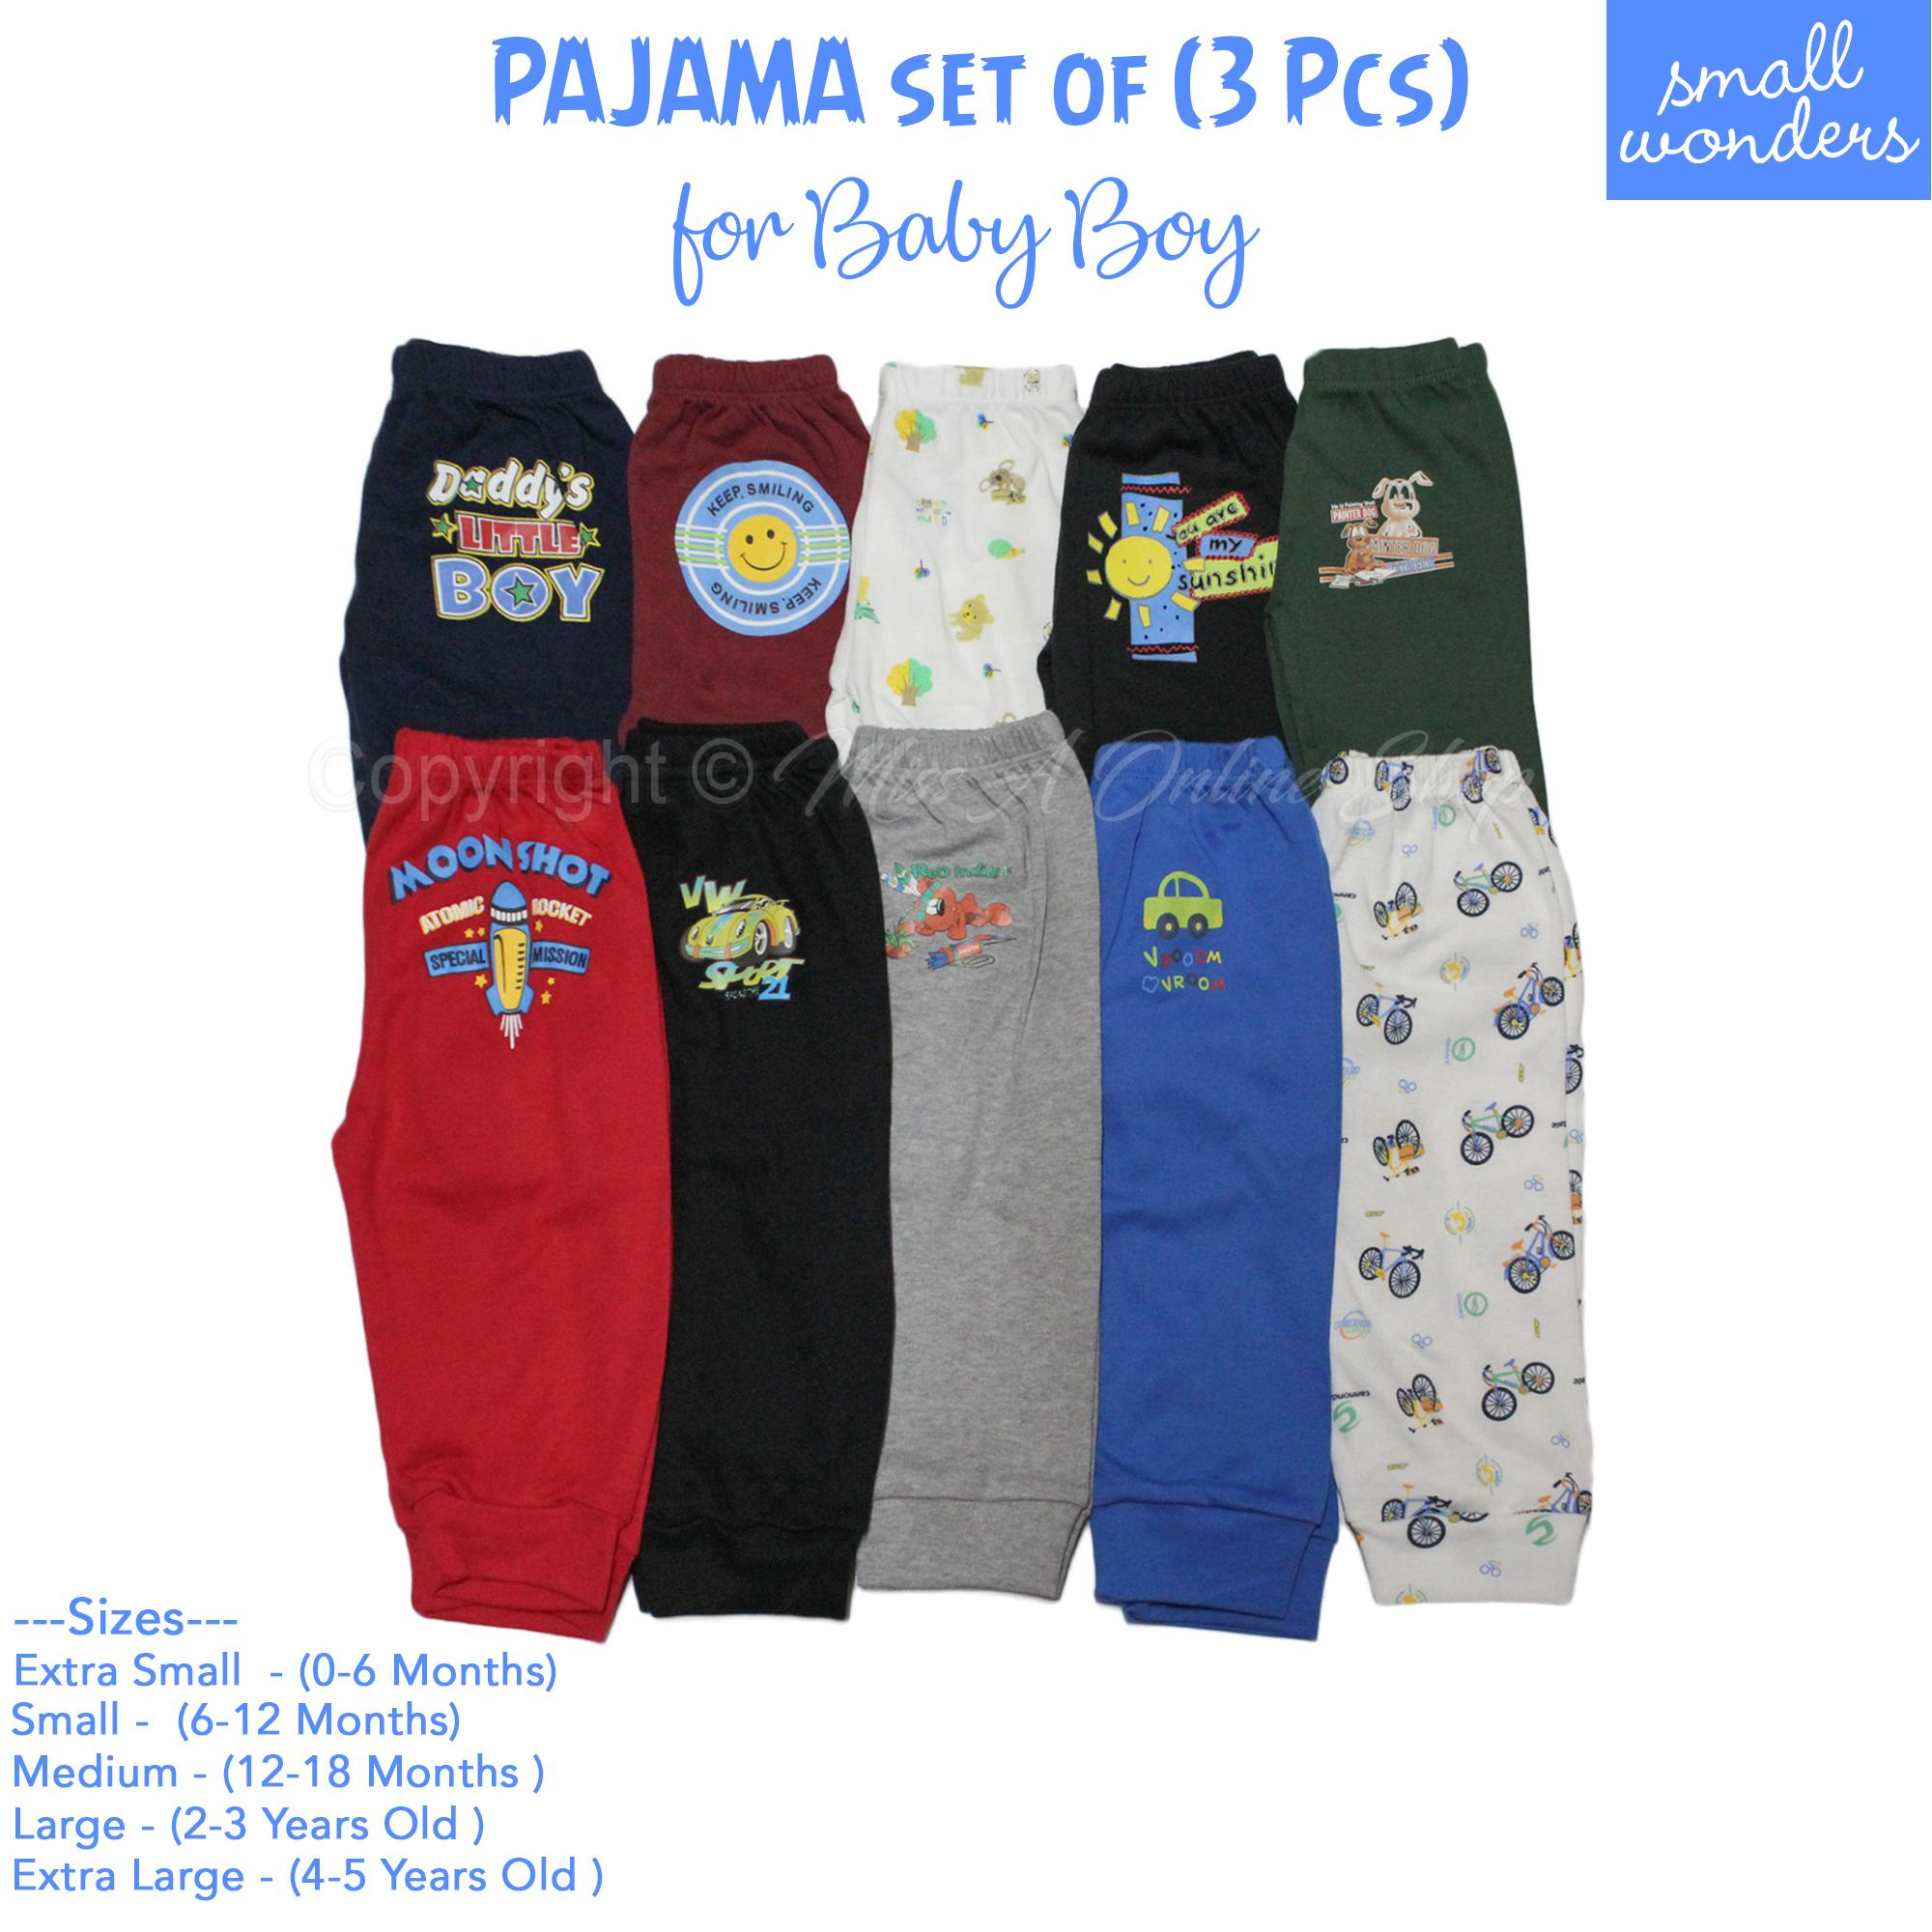 Pajama For Kids Boys 0m - 5yrs Old (3 Pieces) Small Wonders By Miss A Online Shop.